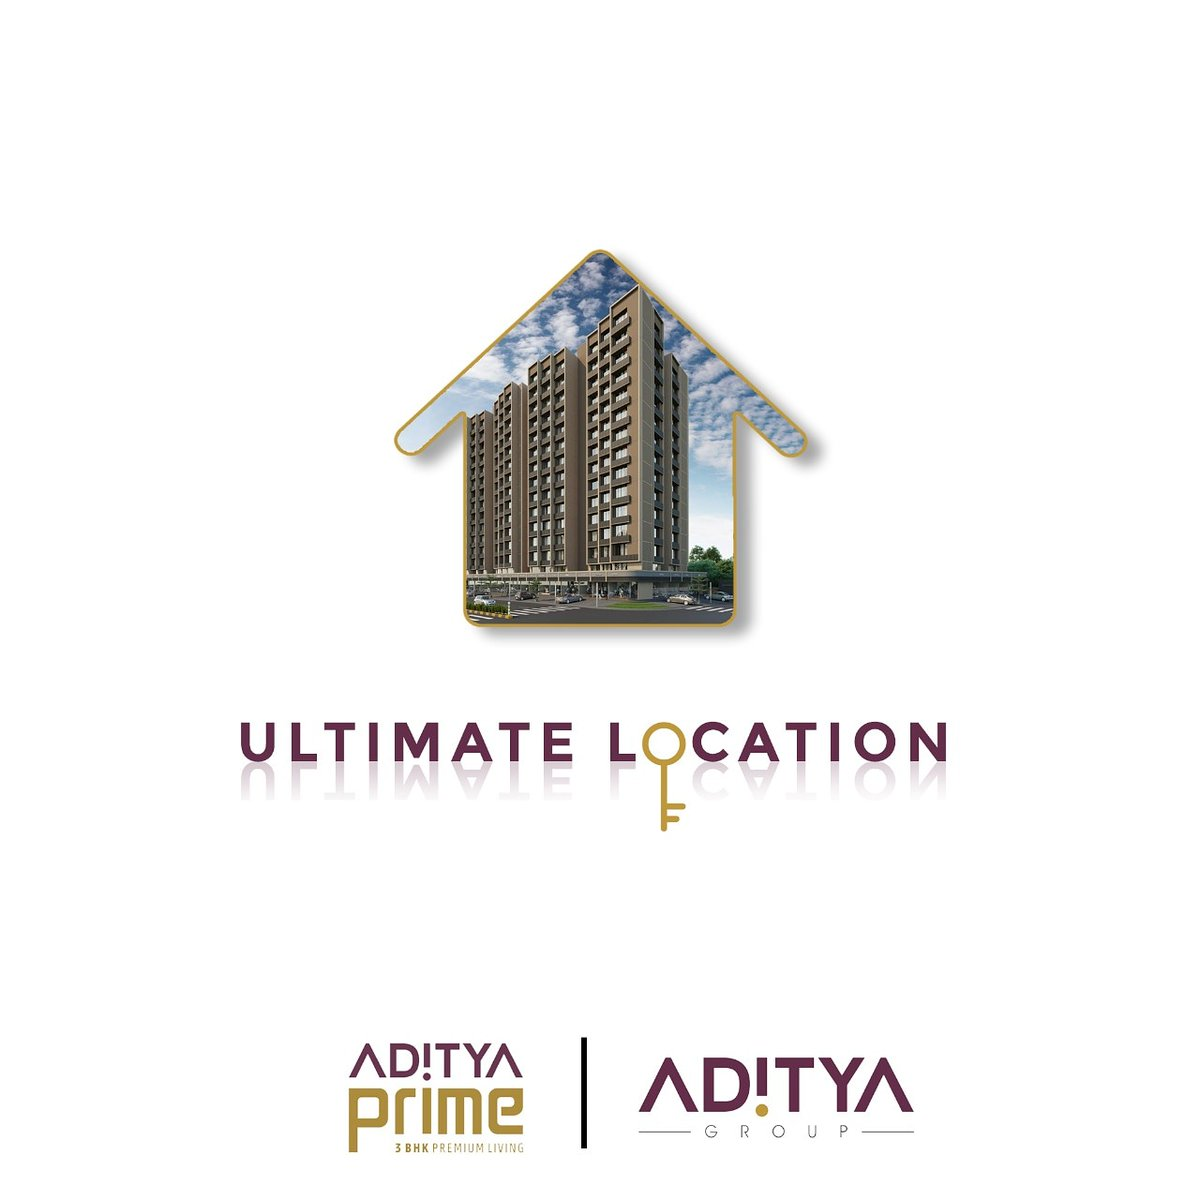 Ultimate location For Ultimate Lifestyle  . . . . . . . . . . . . . . . . . . . . . #LLP #realestate #flatforsale #properties #broker #realtor #resale #commercialproject #realty #forsale #realestateagent #realestateagents #property #newproject #flatforrent #newhome #yourhome https://t.co/nJdvdPQTBJ